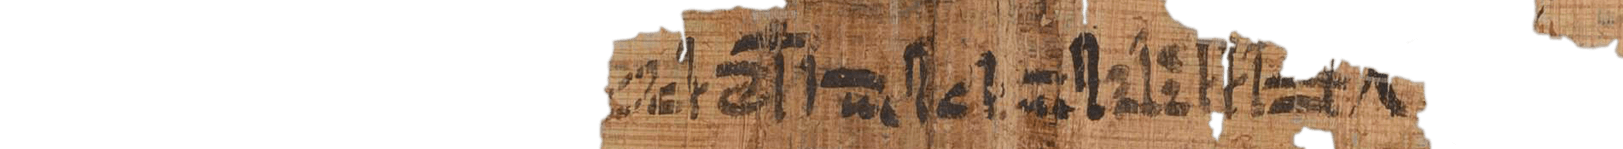 the Turin king list 3.4 (photo of the hieratic text)